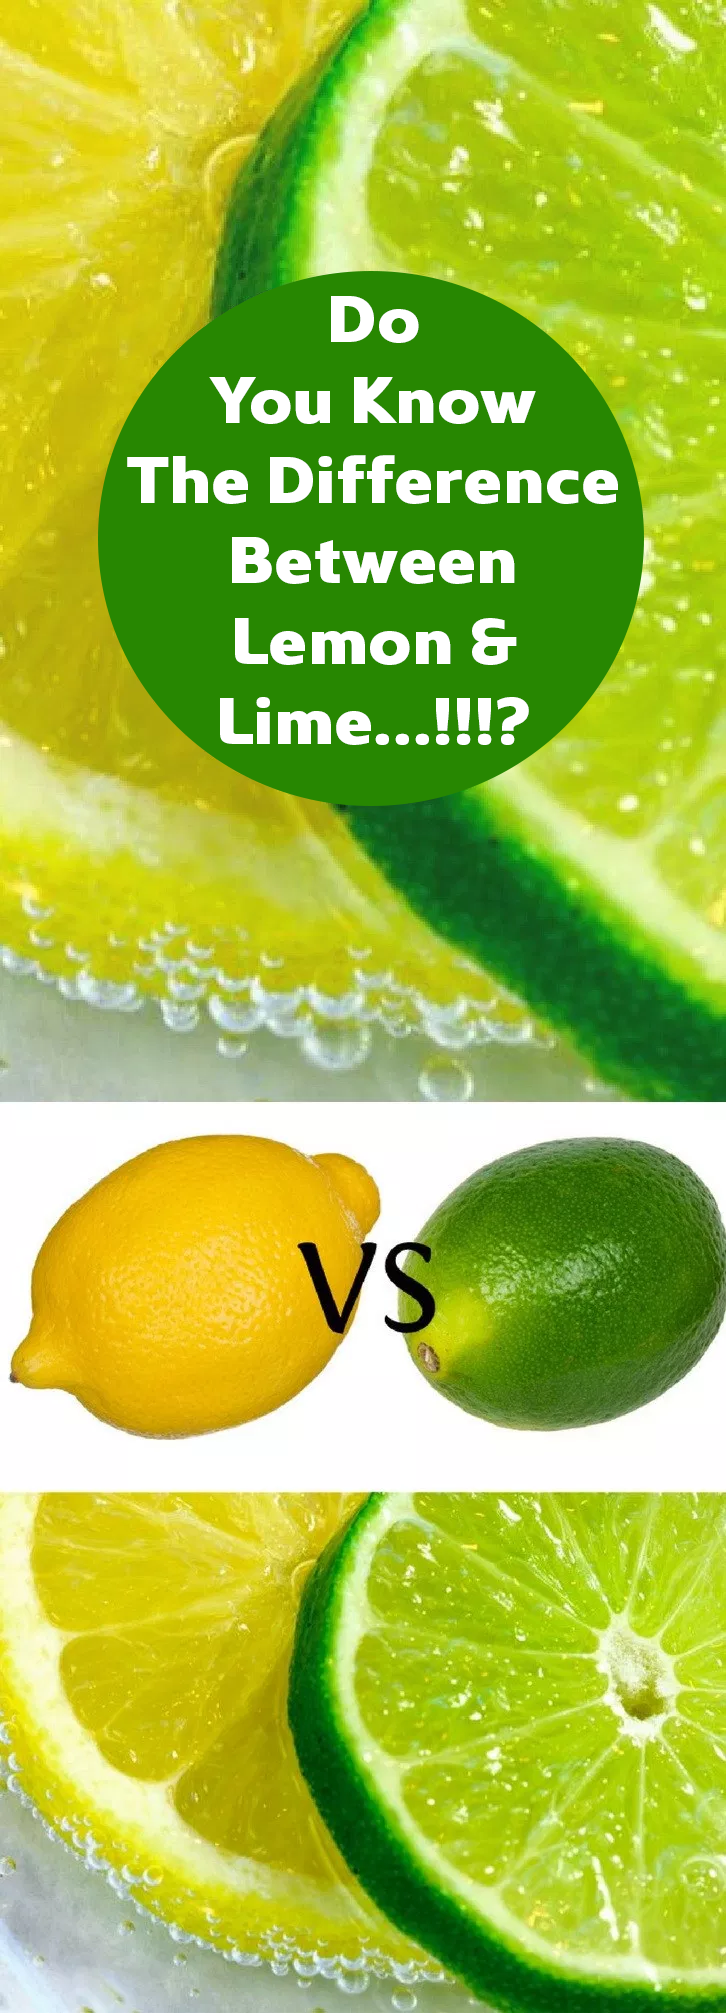 Do You Know The Difference Between Lemon & Lime…!!!?